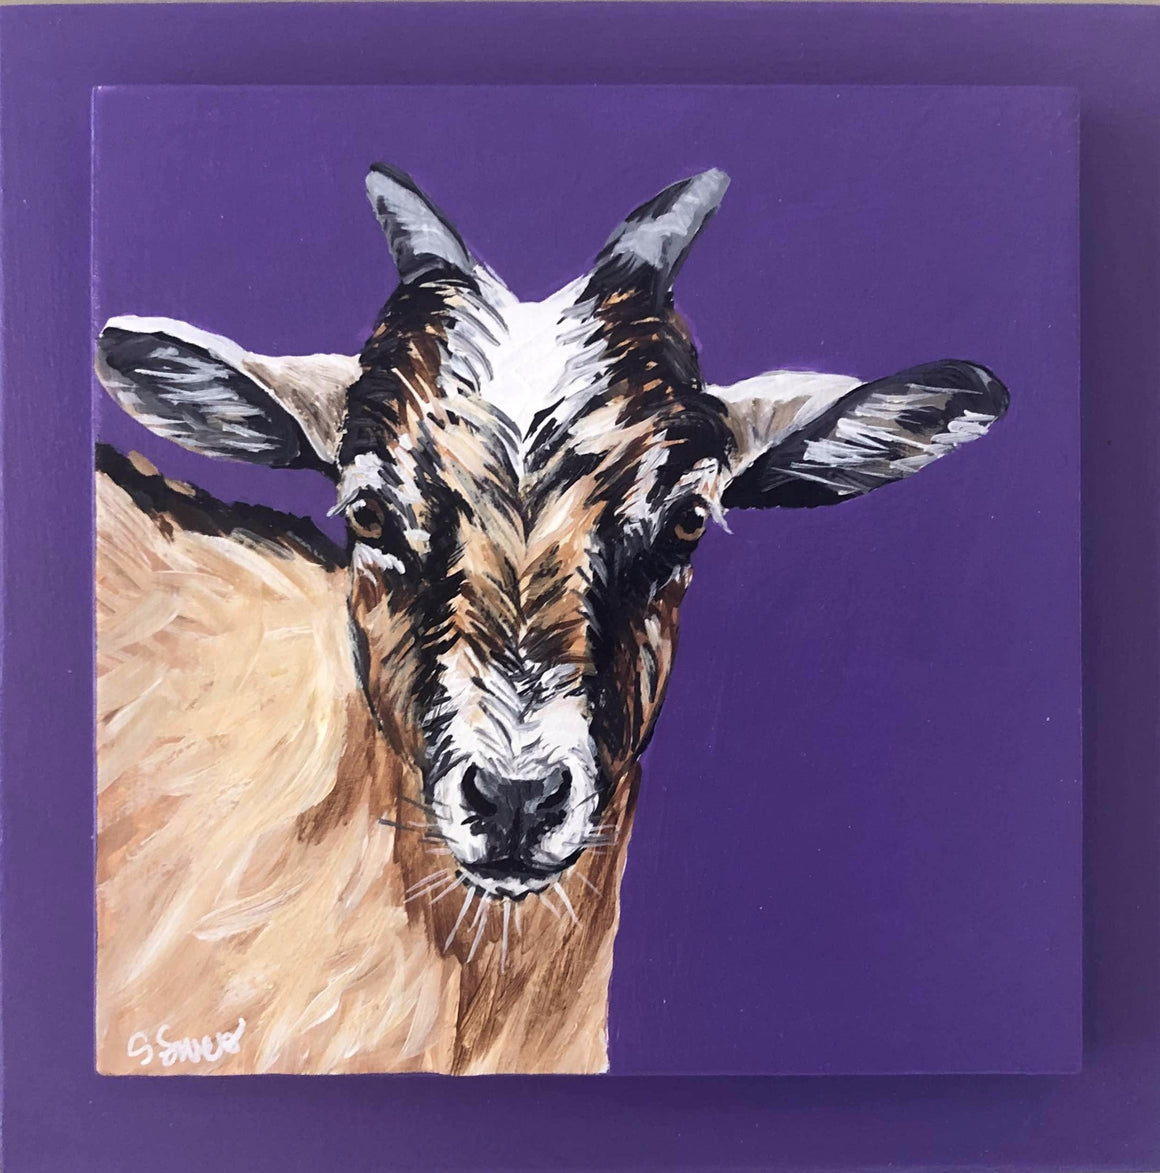 Goat on purple